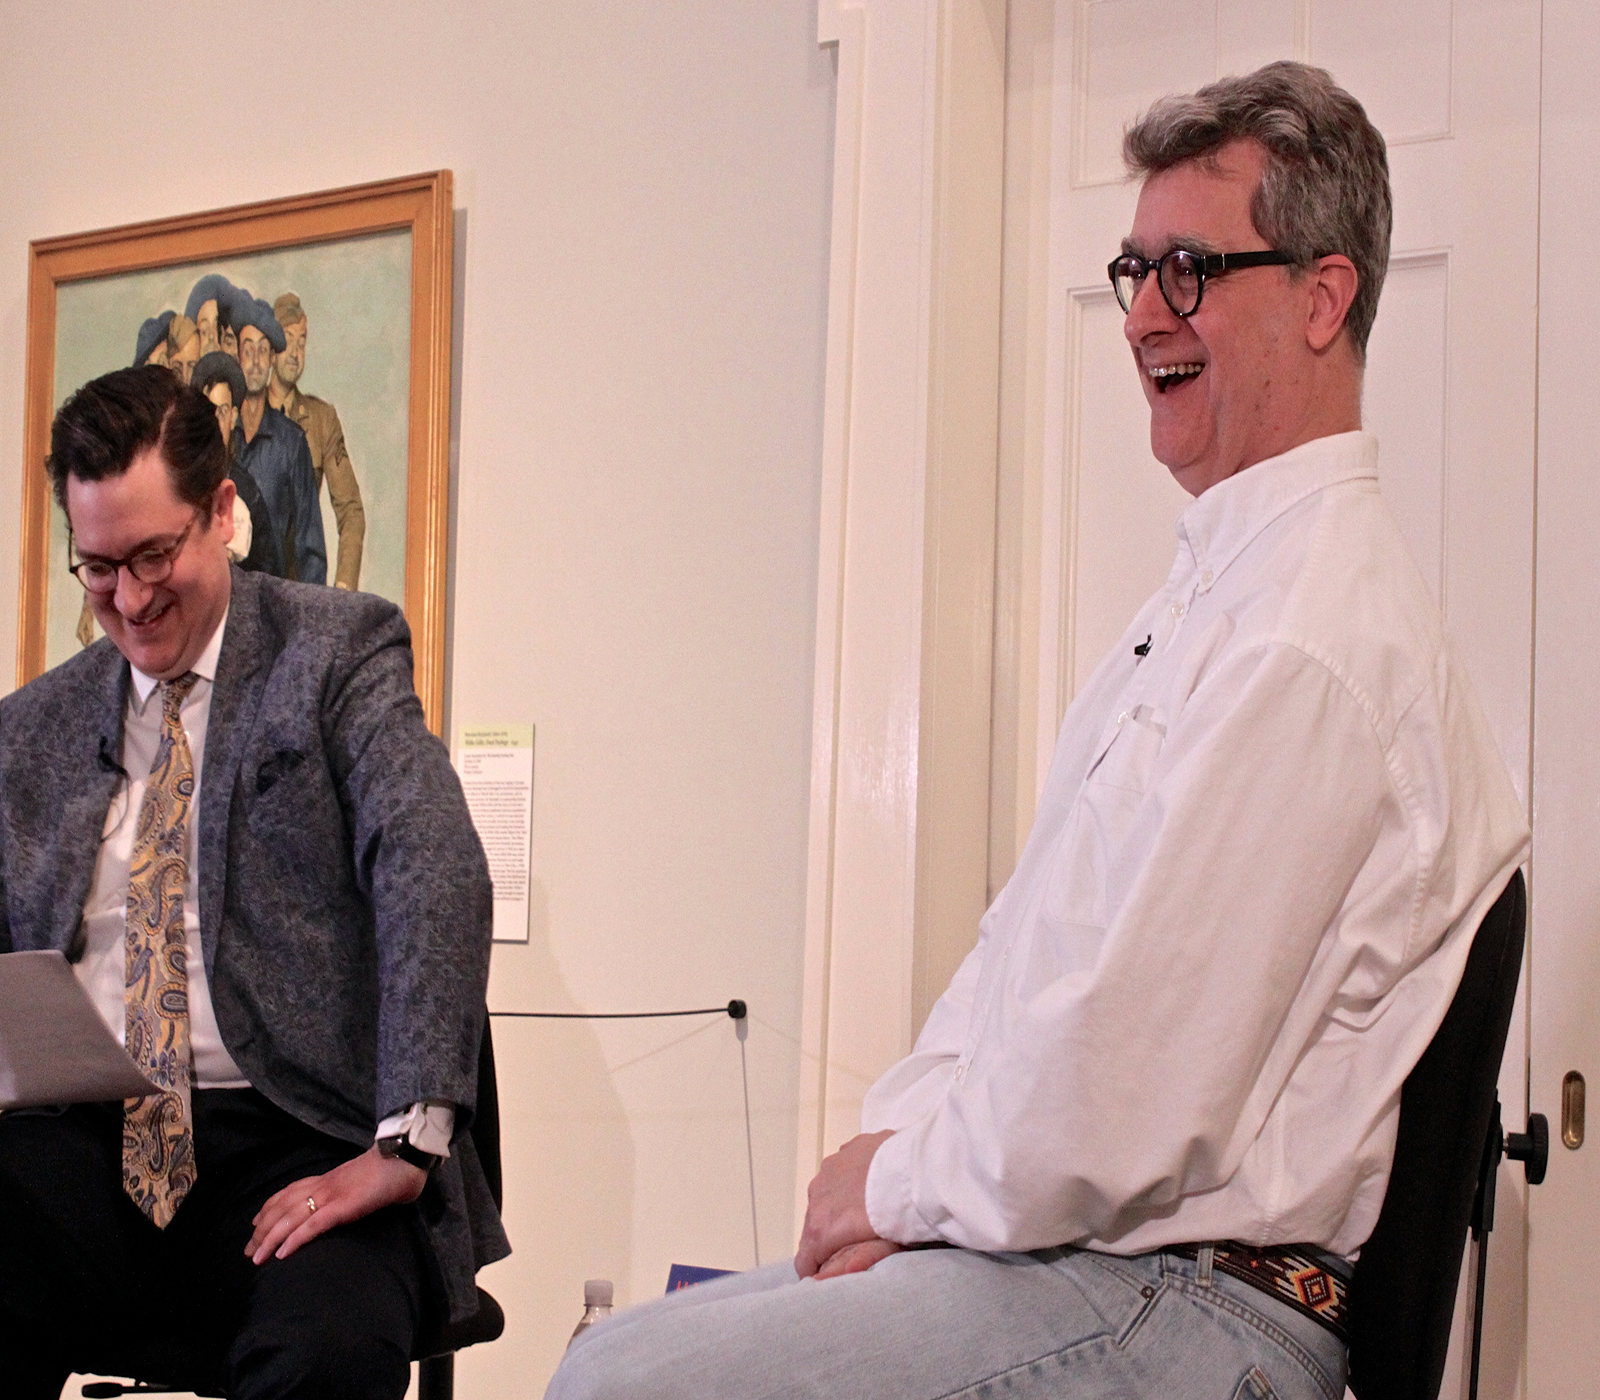 Fred Seibert (right) talking about the future of Frederator. Photo by Marisa Losciale